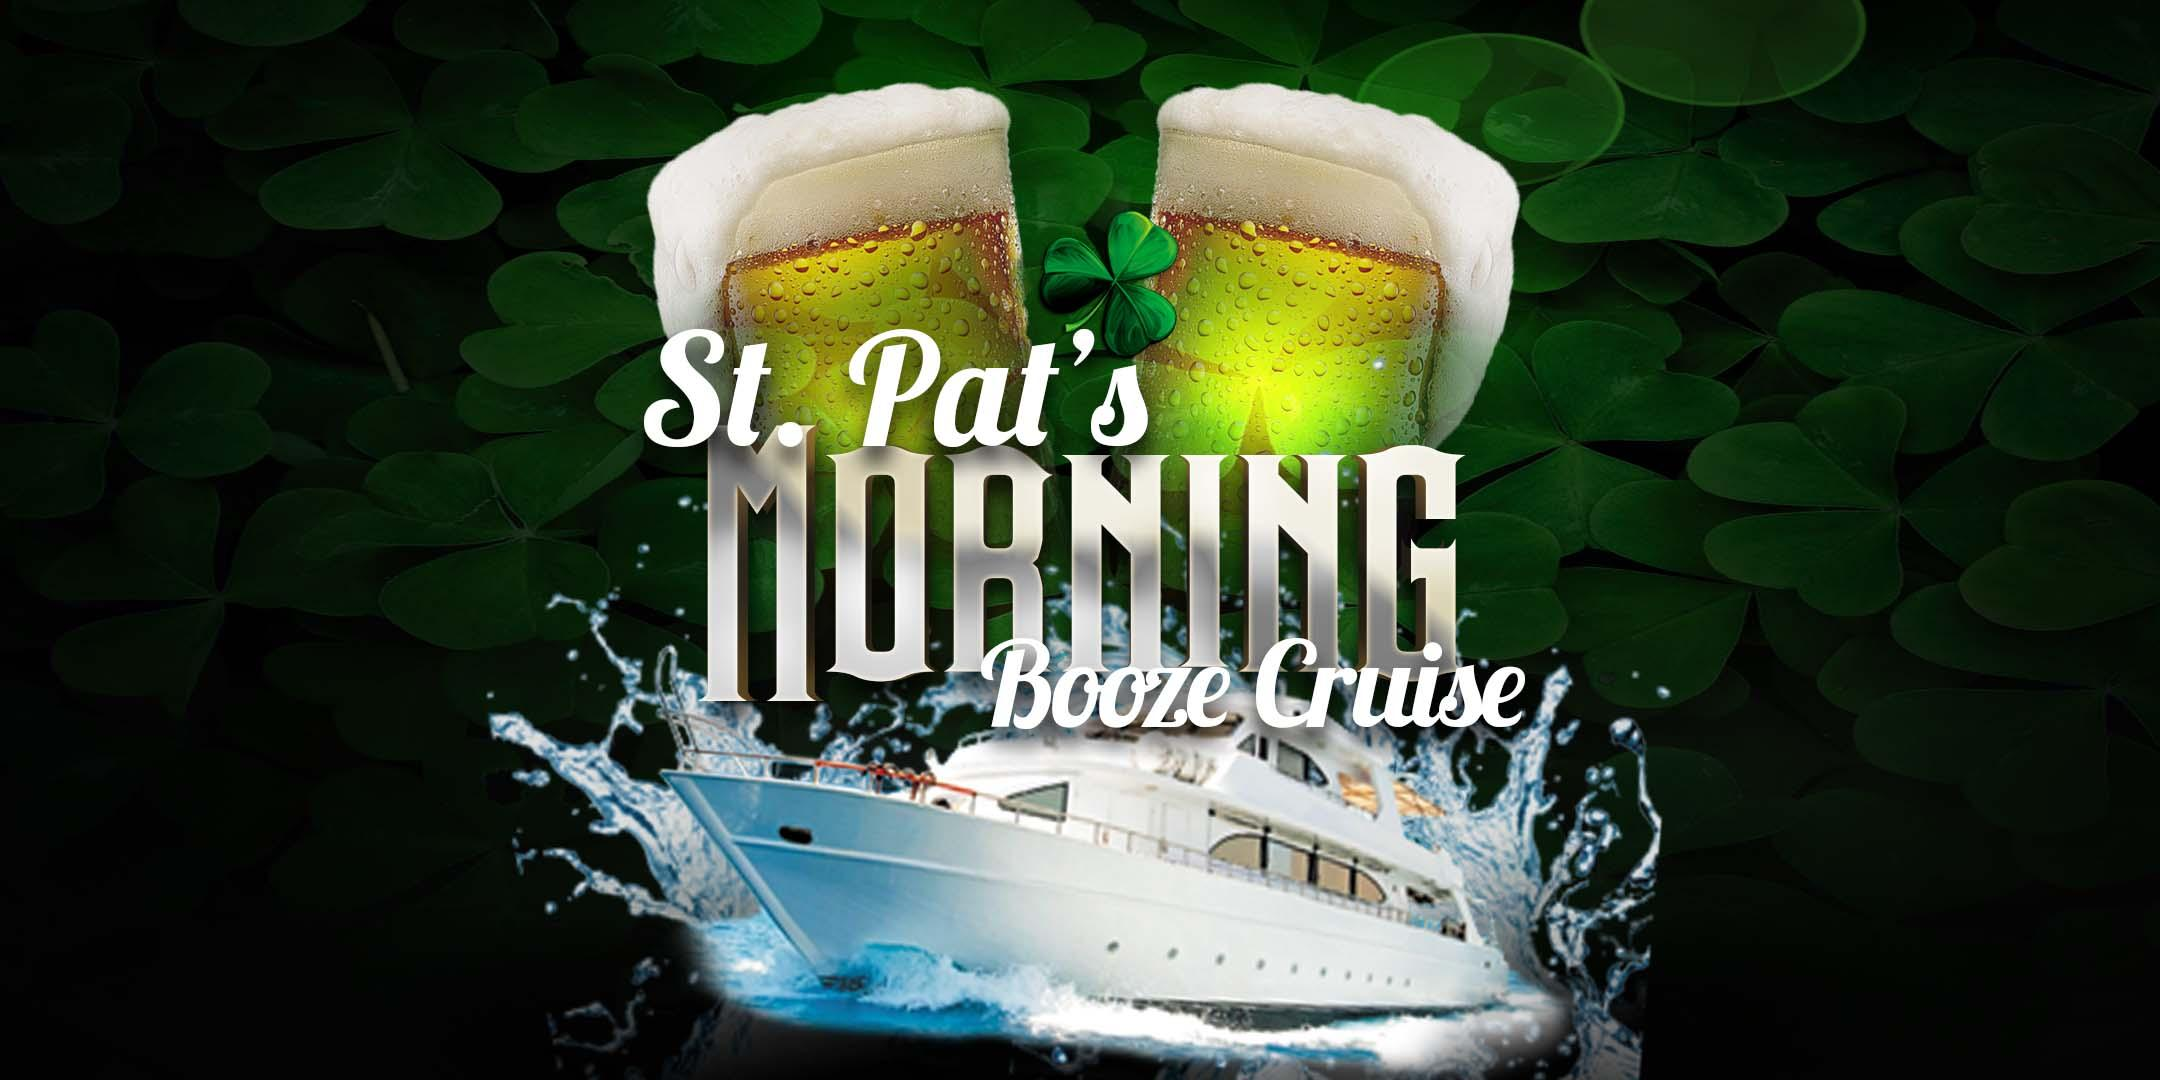 St. Pat's Morning Booze Cruise on March 17th on Anita Dee II! (9:30am)